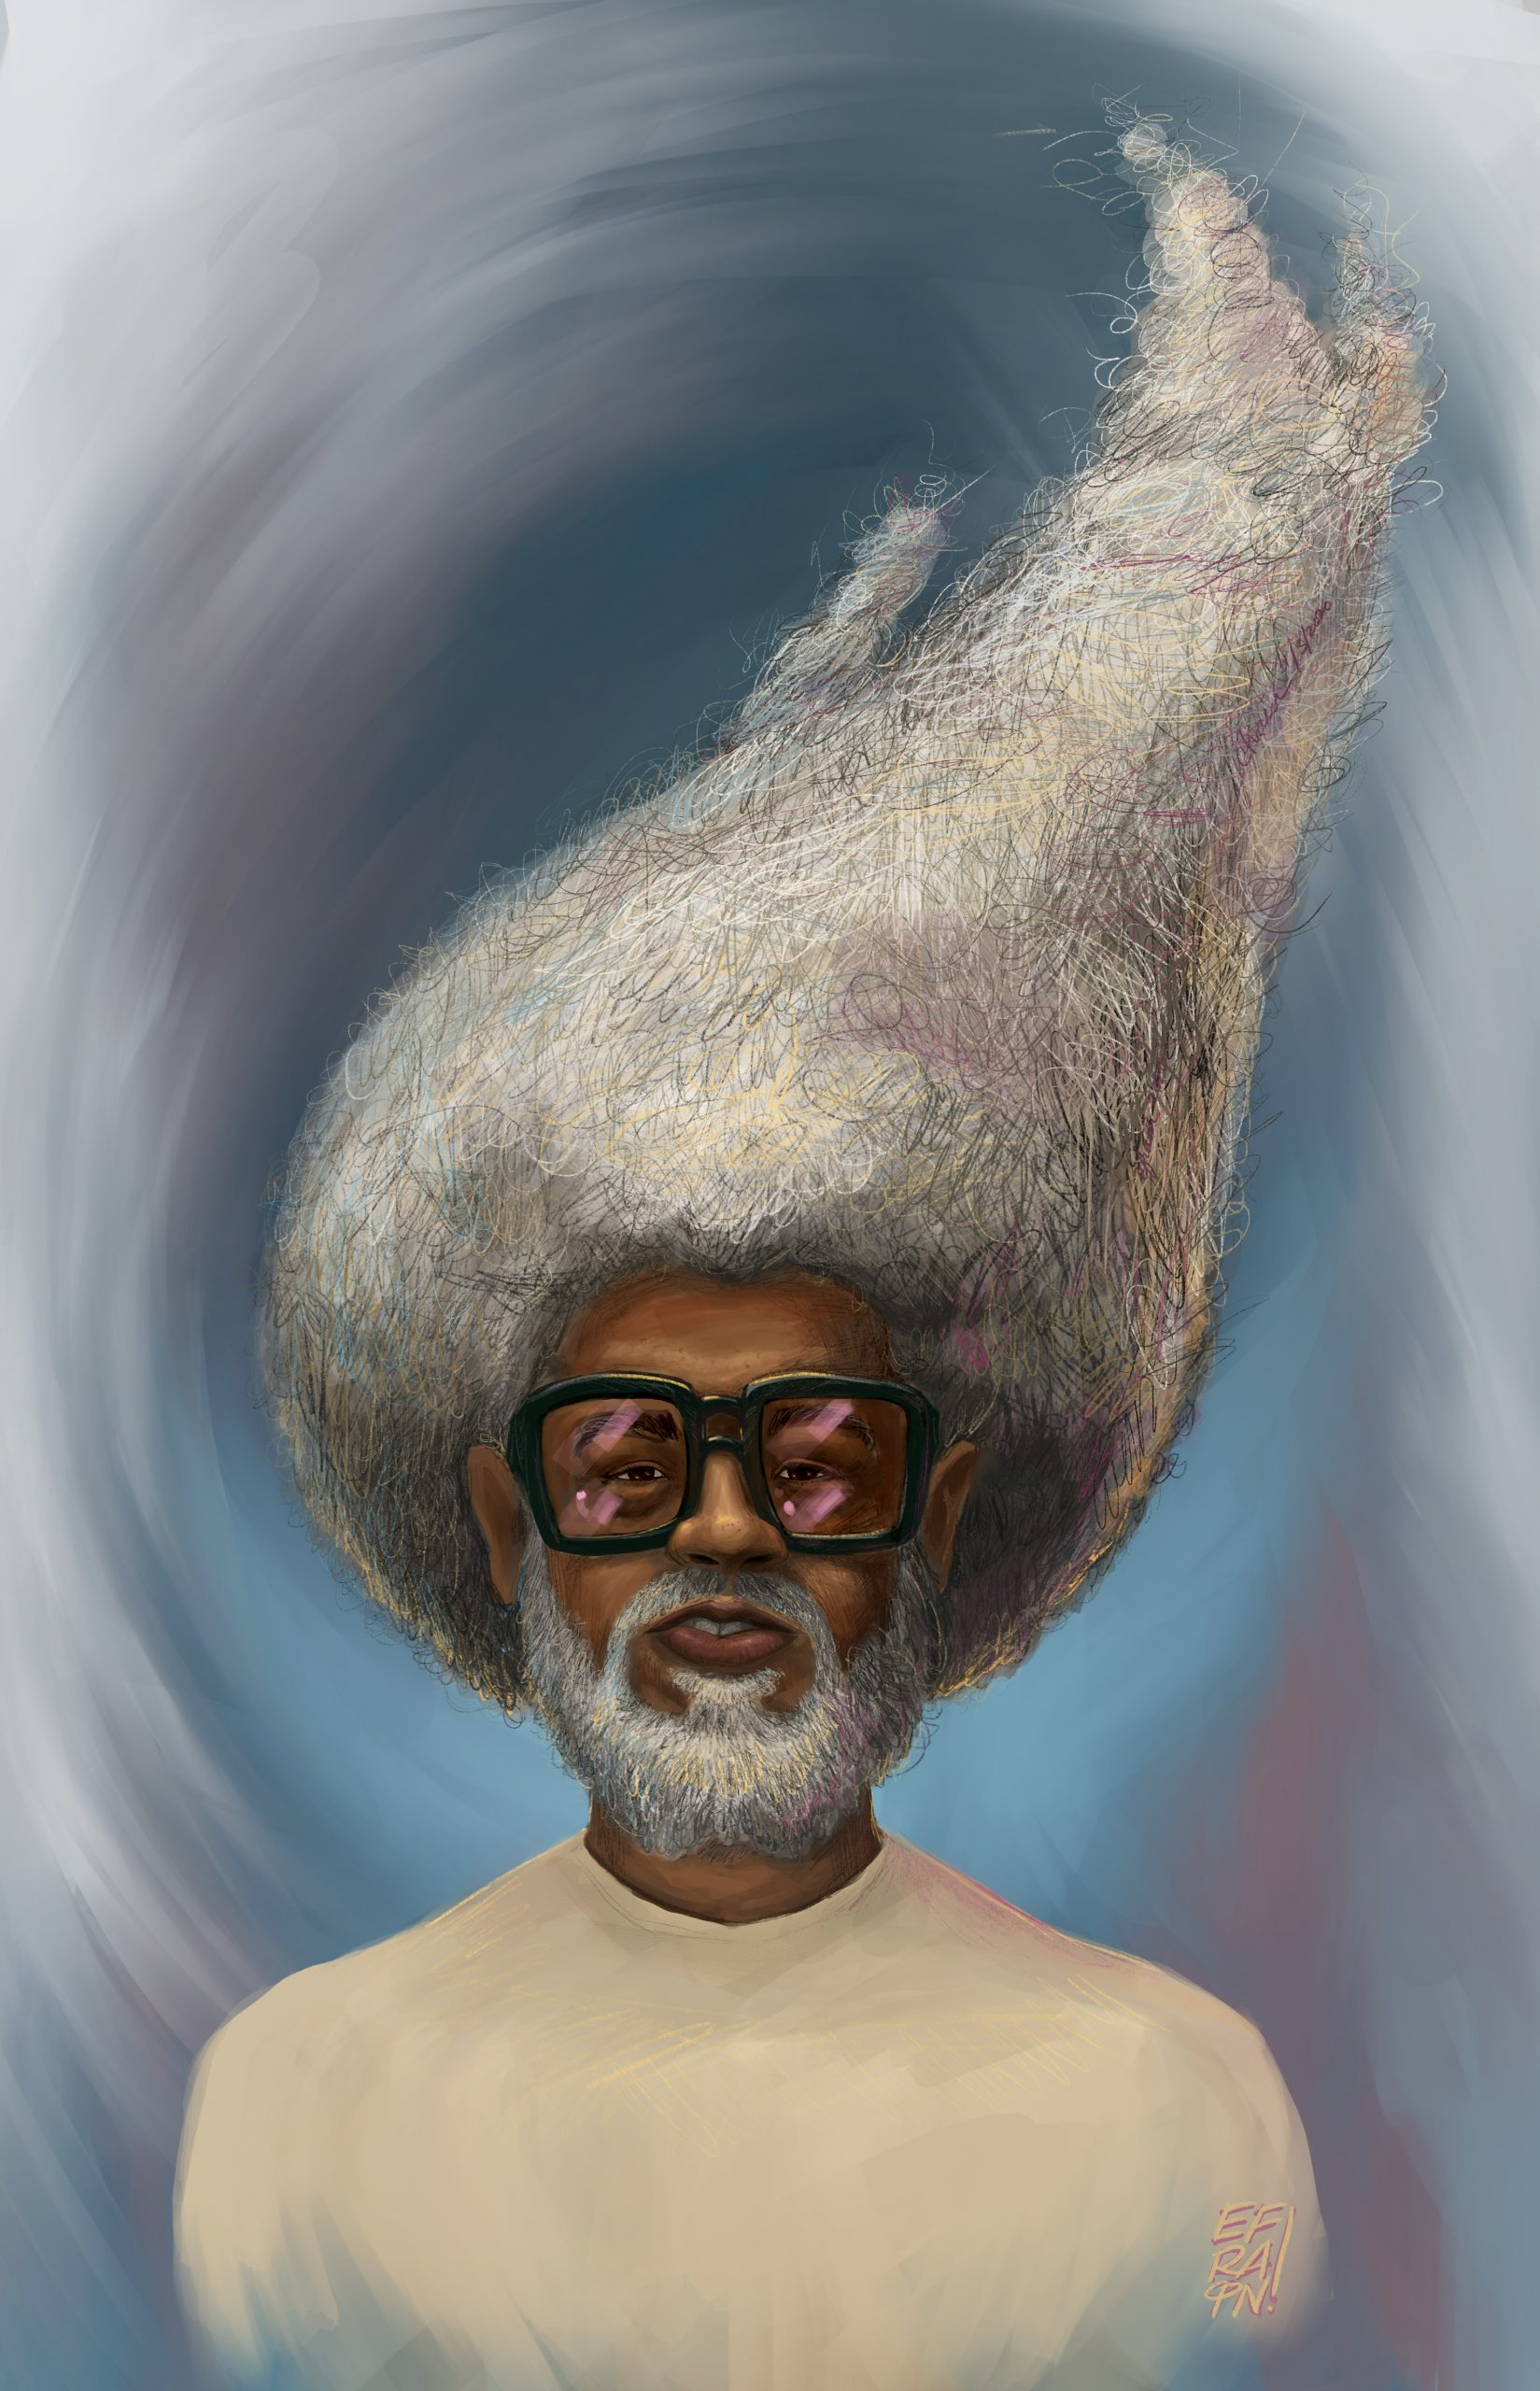 Black Man with White Beard and Large White Afro that whimsically whisps upward like a flame